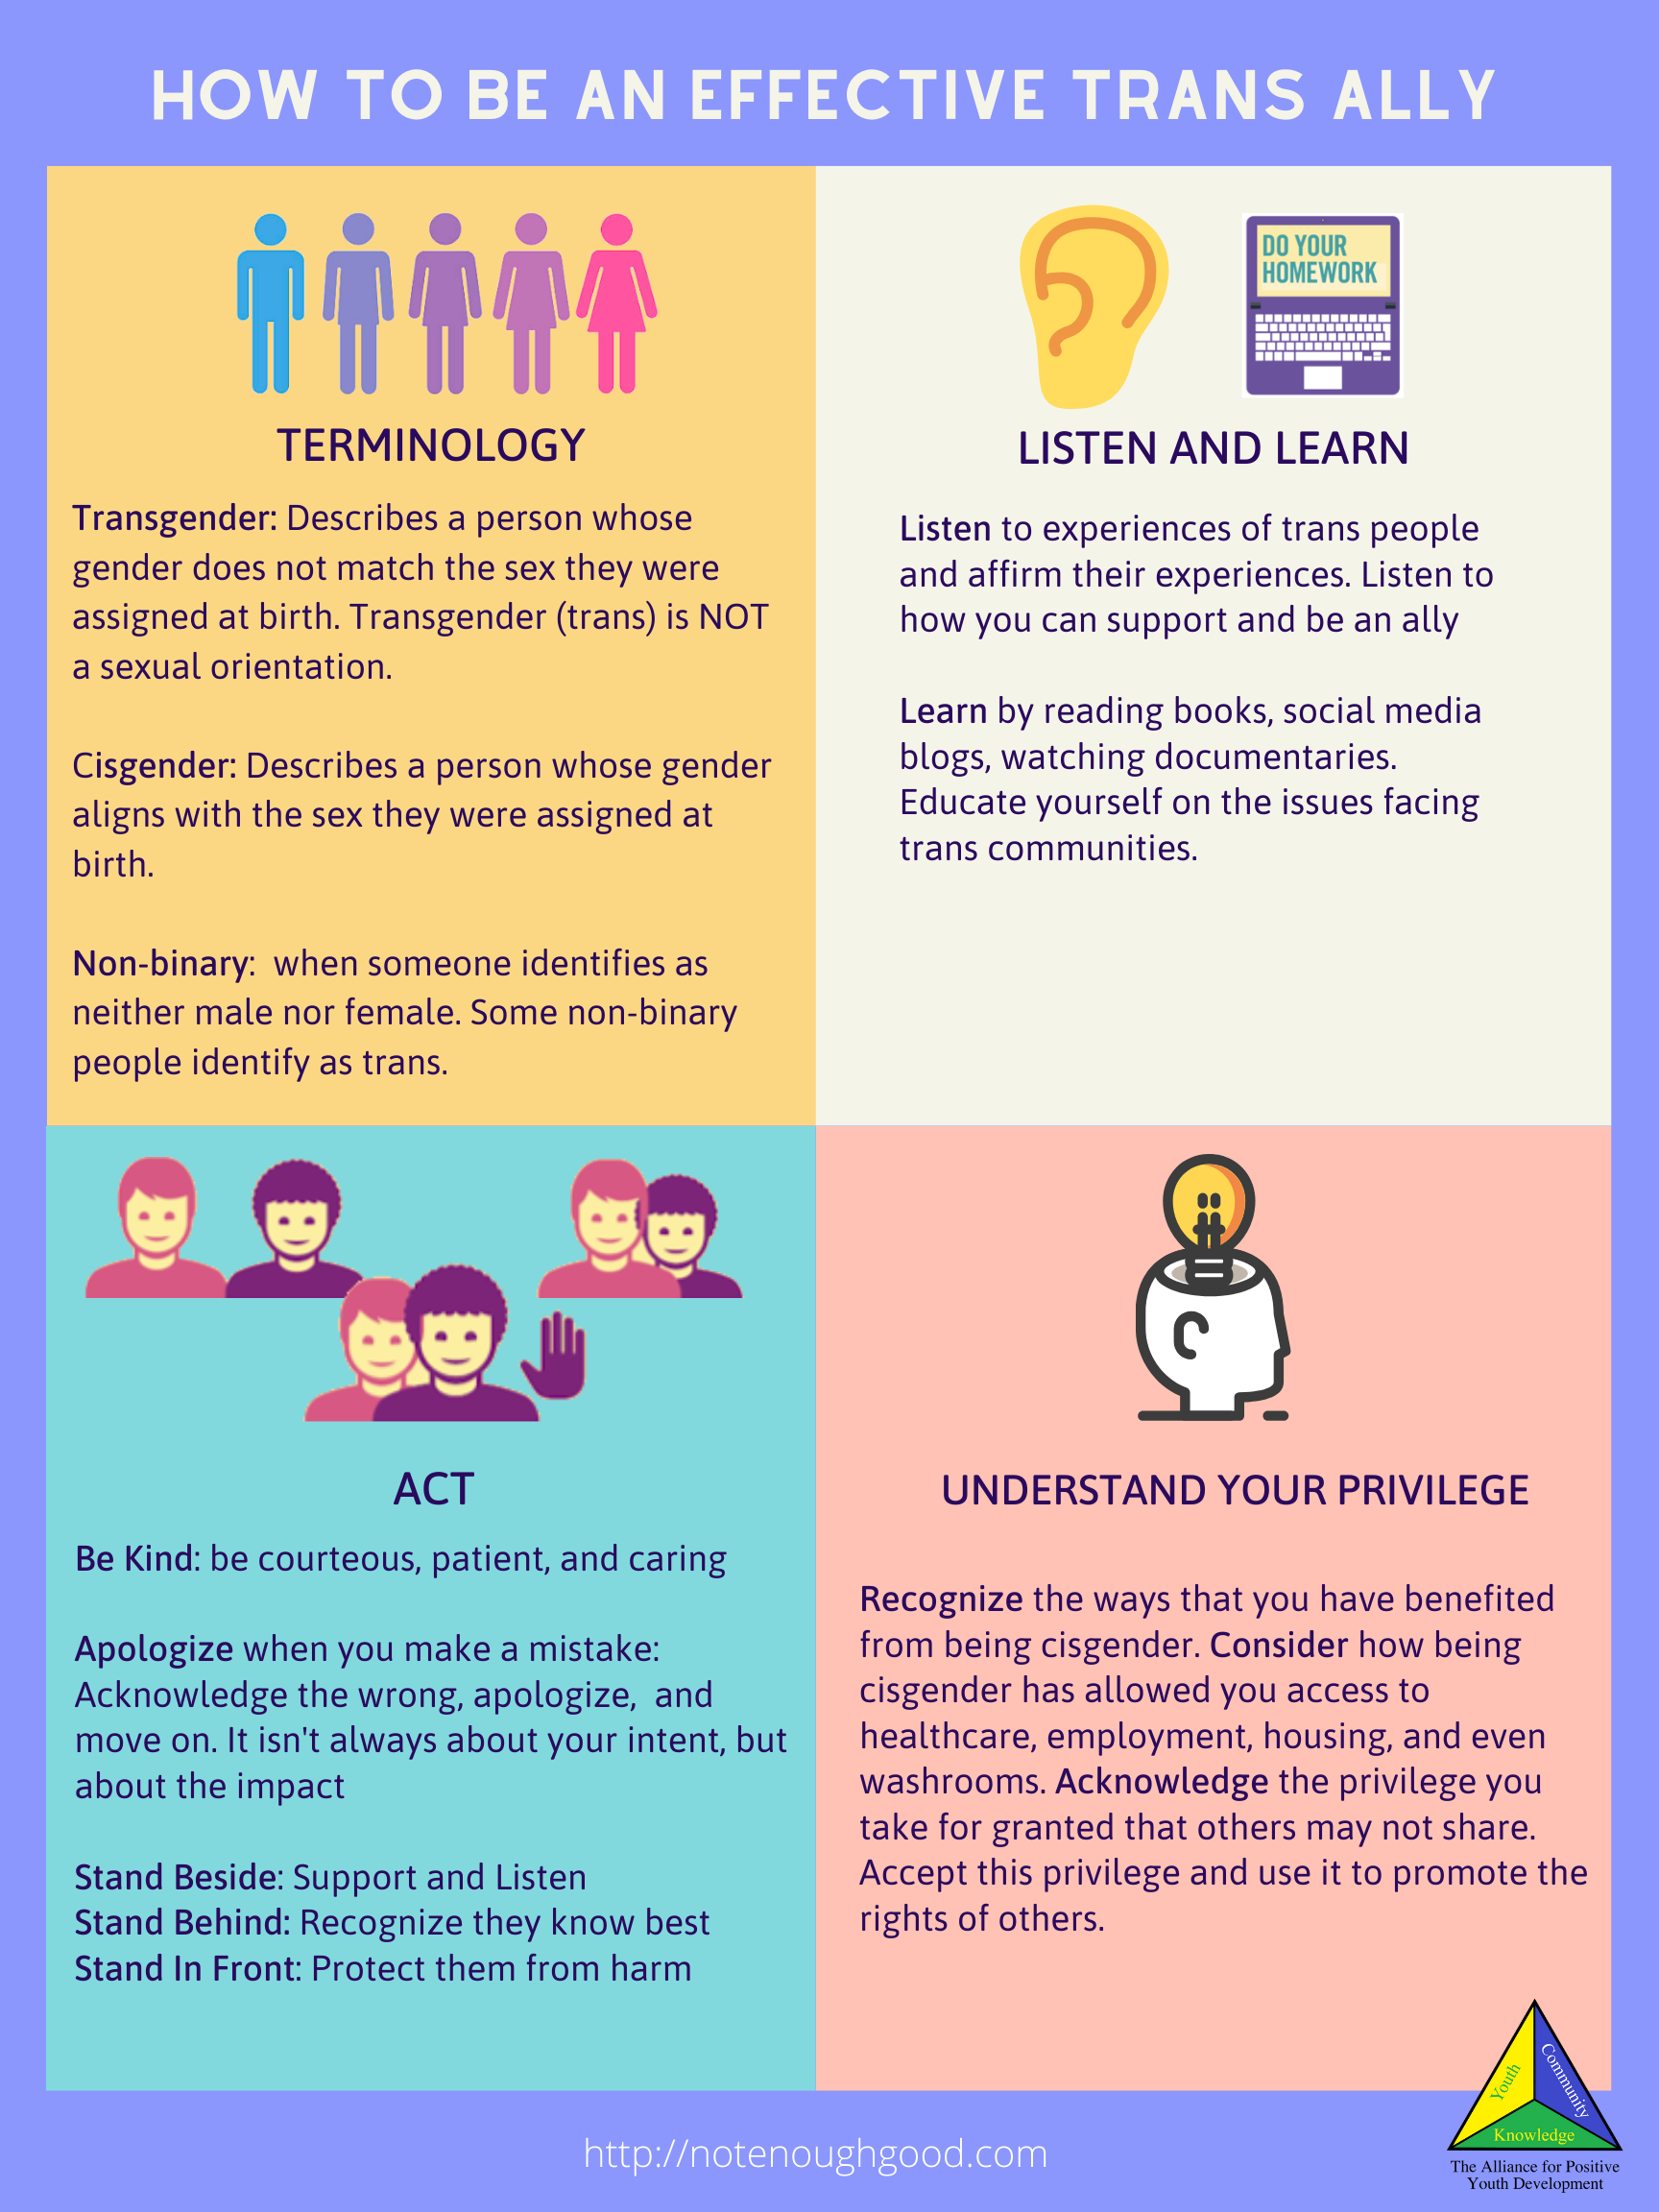 infographic on how to be an effective trans ally